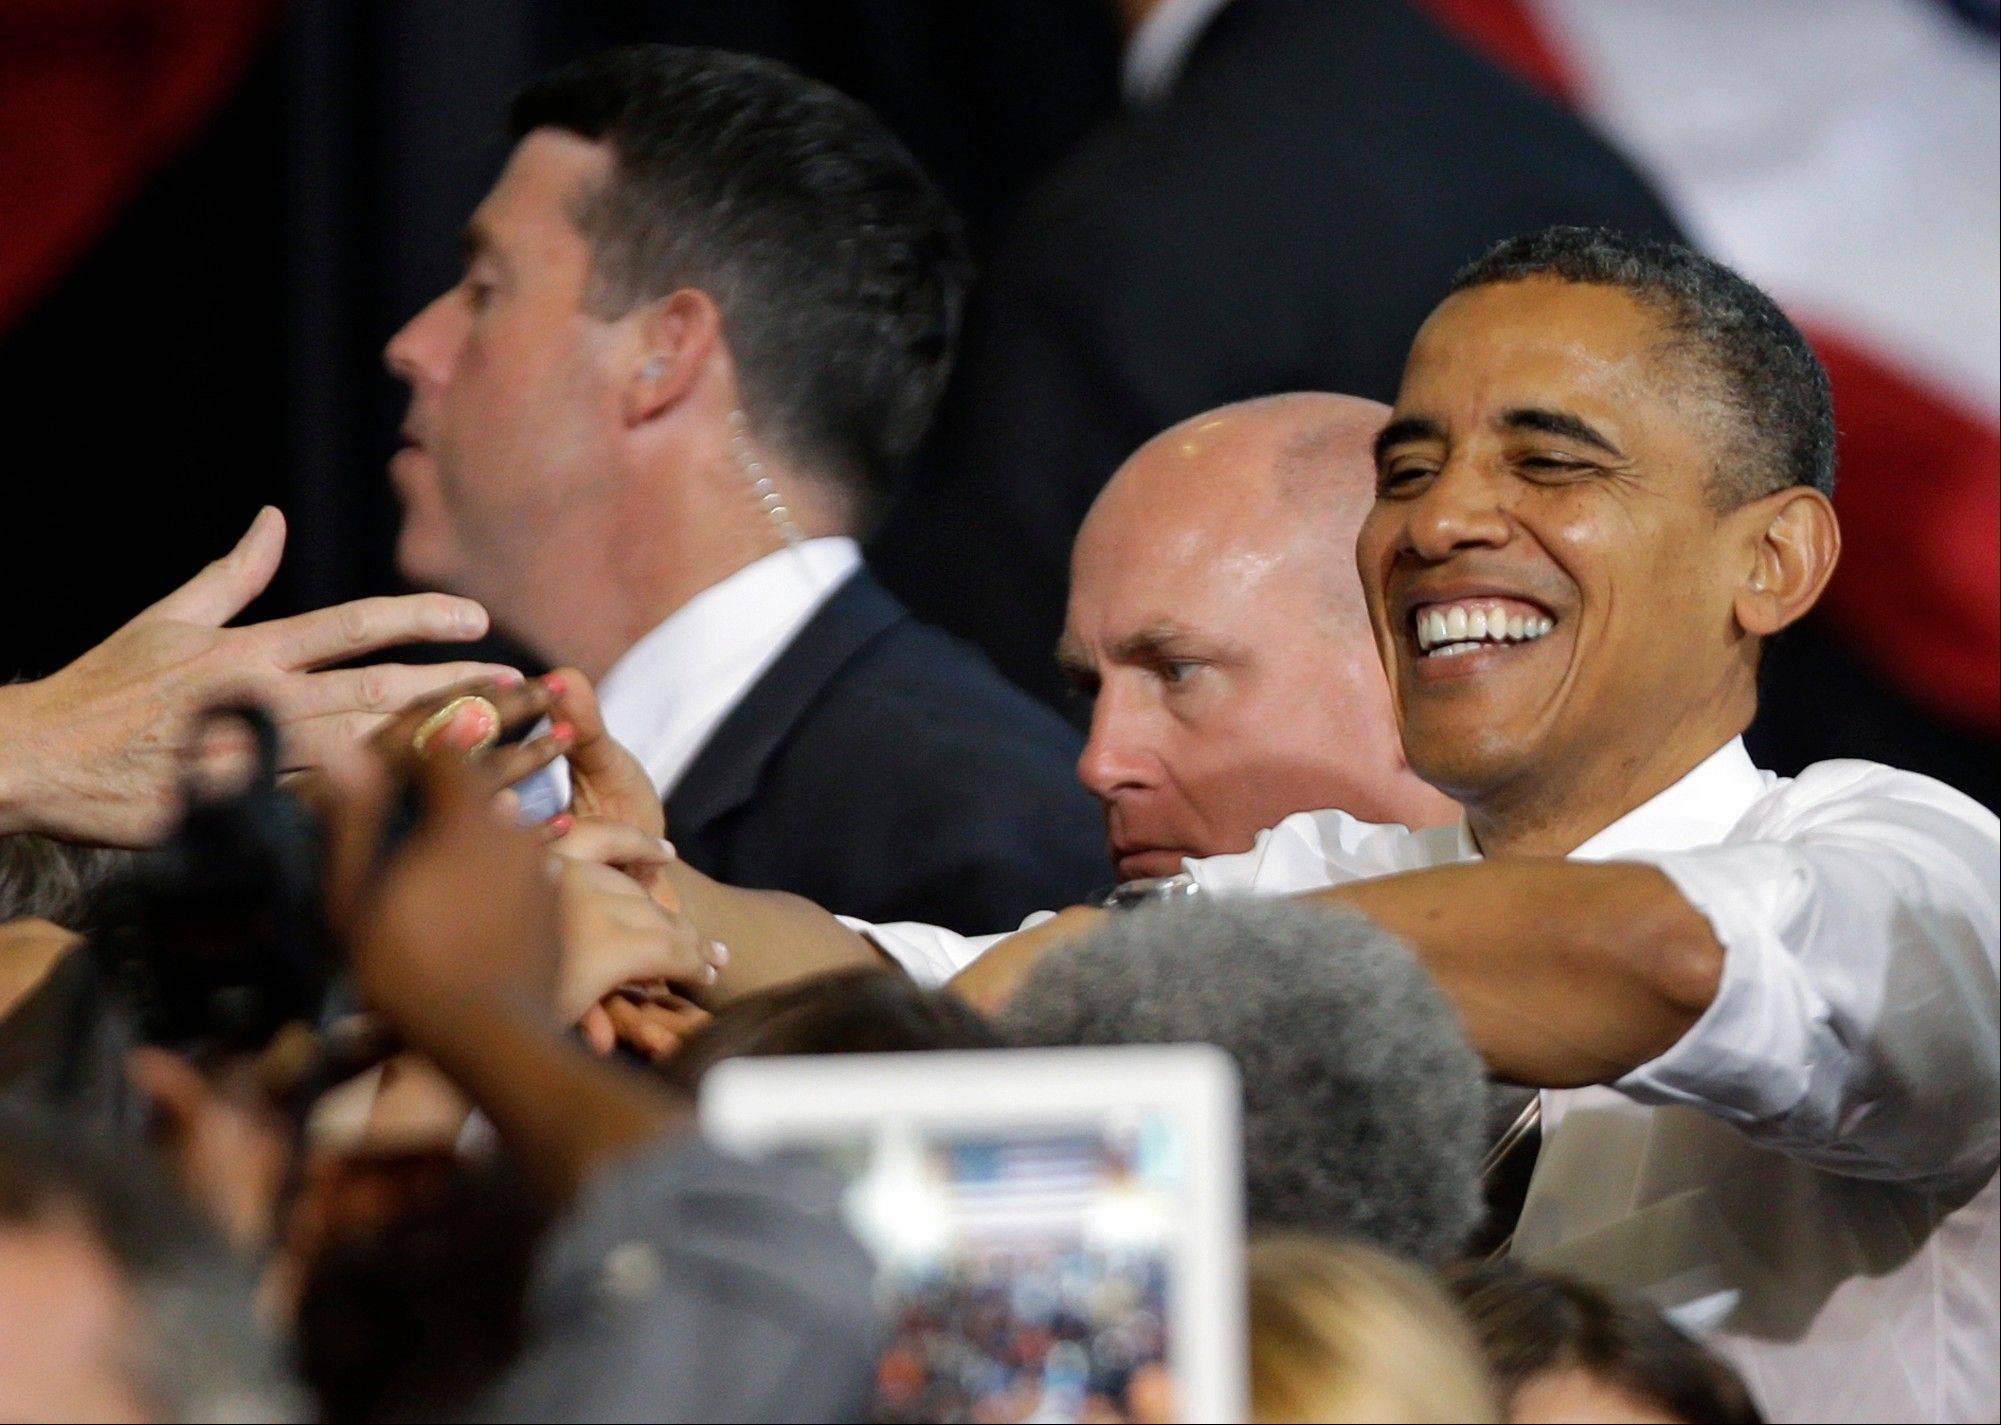 President Barack Obama greets supporters Wednesday after speaking at a campaign event at Bowling Green State University in Bowling Green, Ohio.